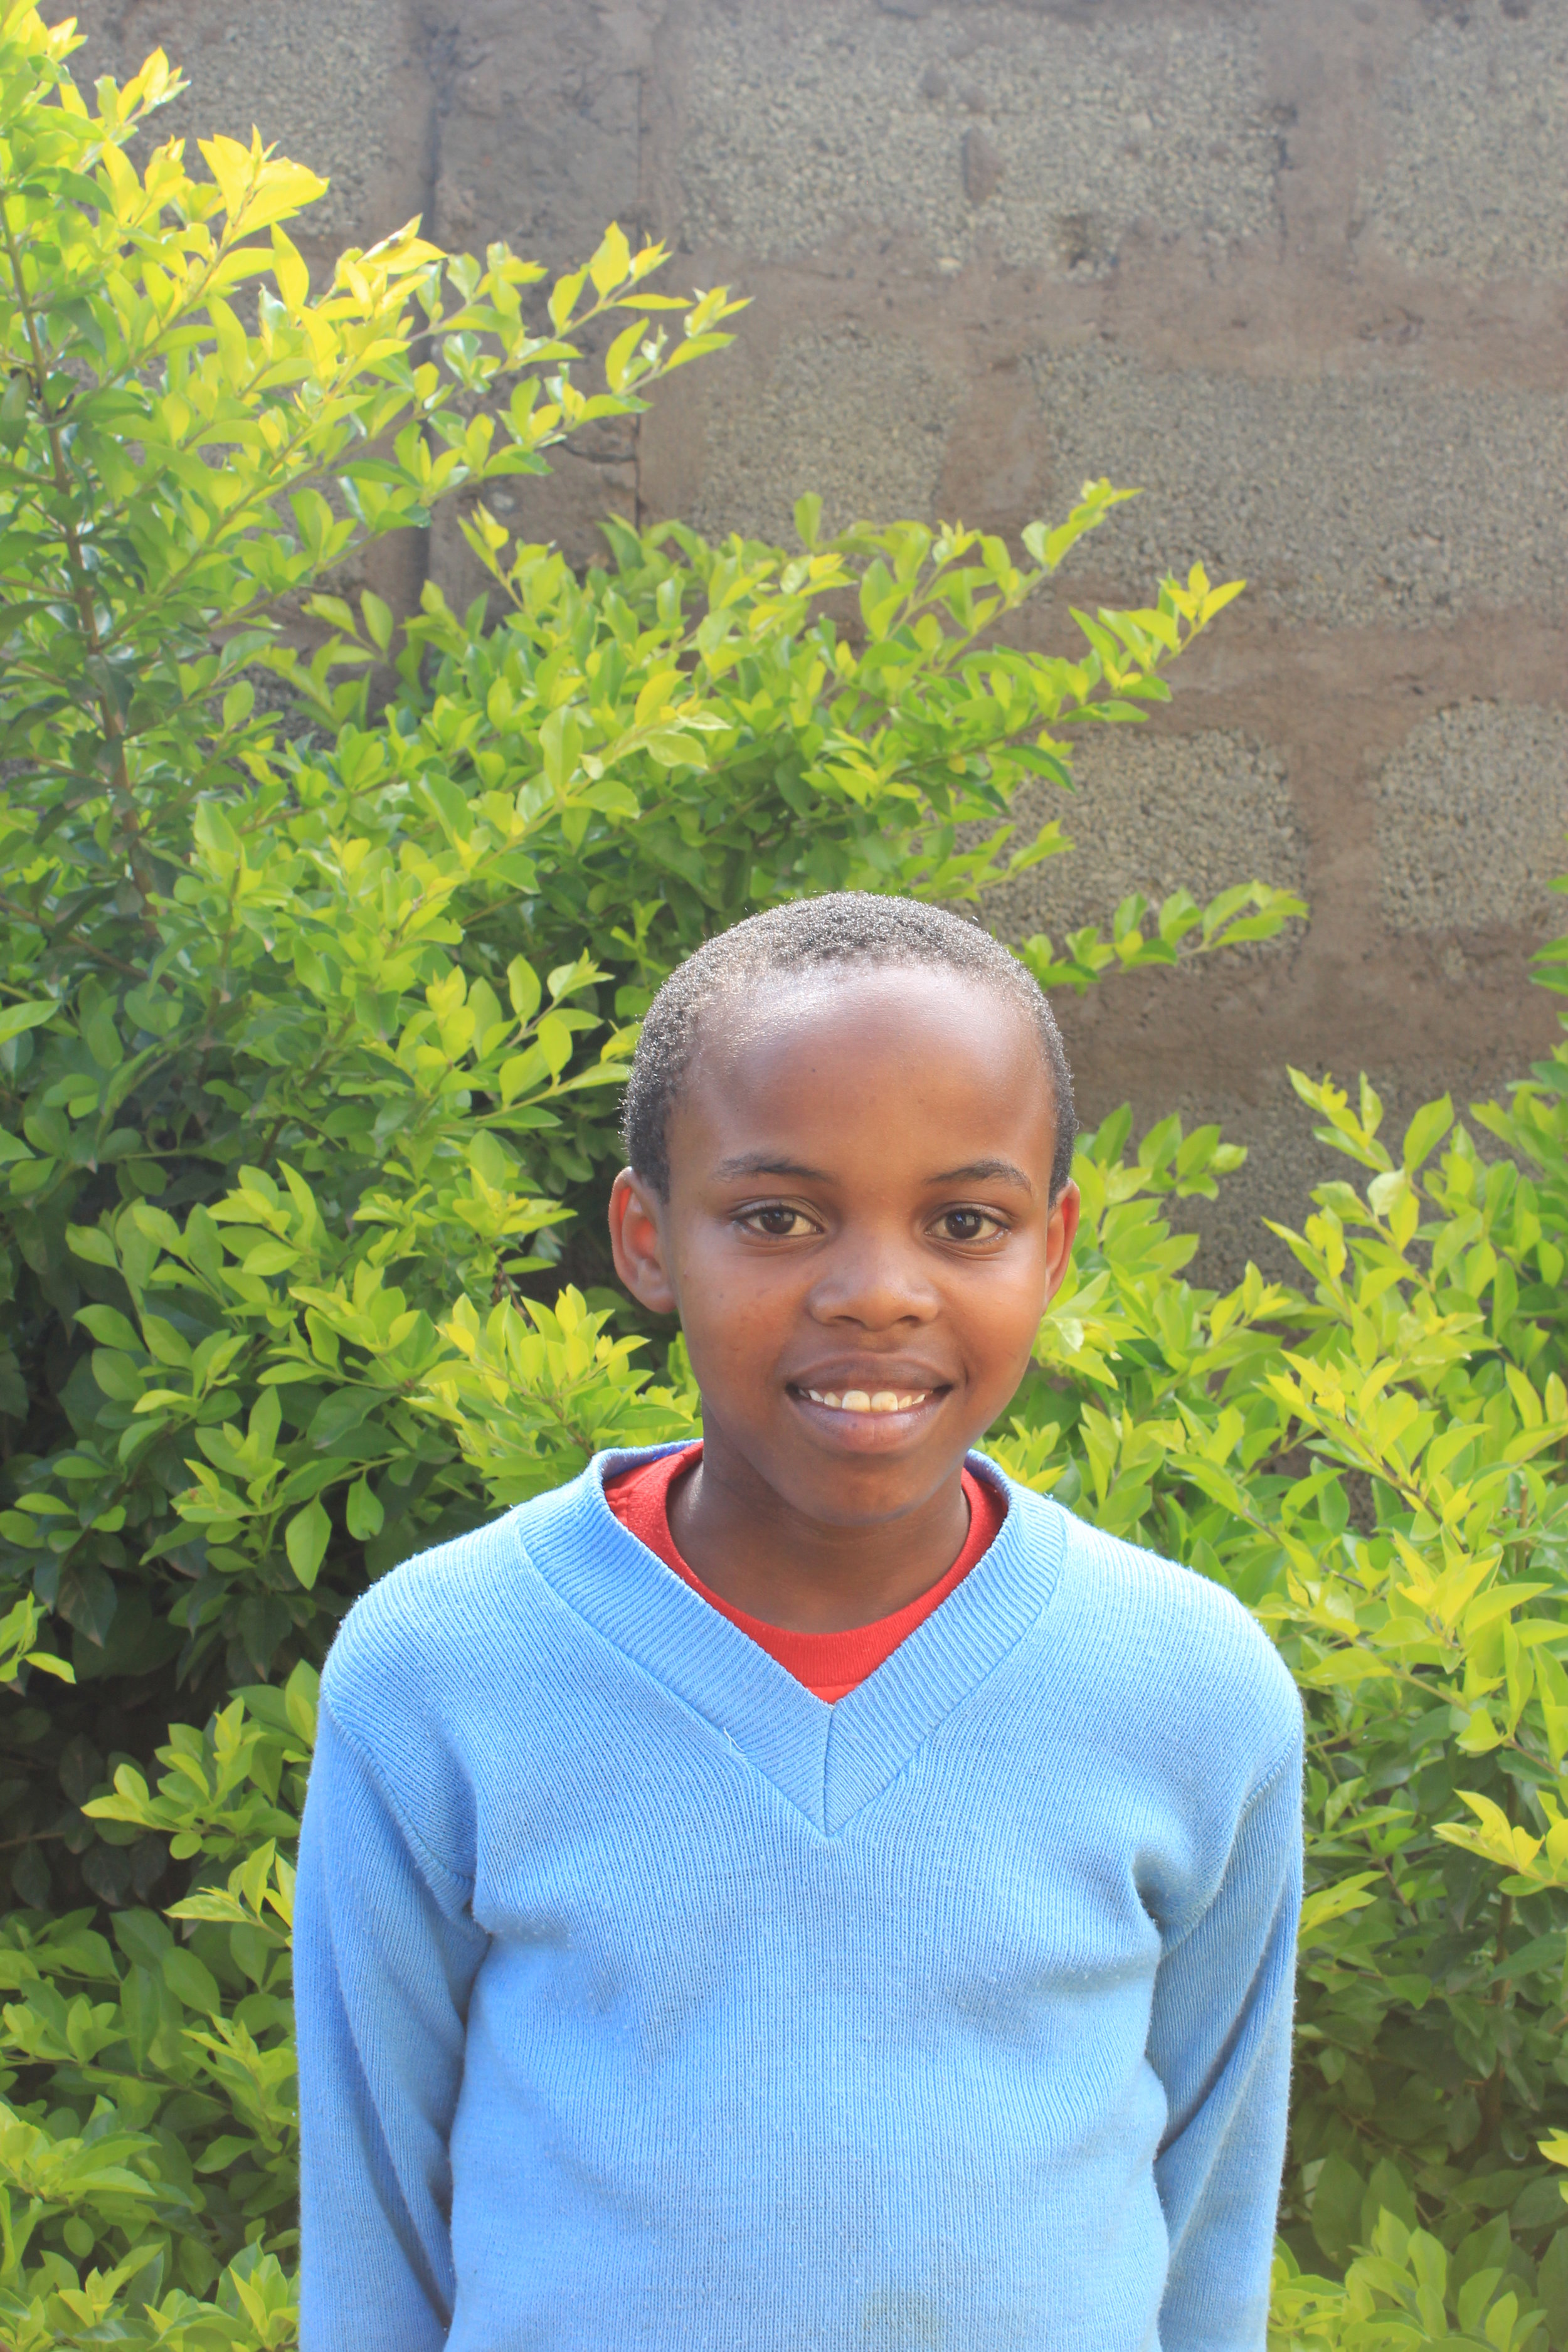 Irine, 12 - Irine's father died from Malaria. Her mother was traumatized after the death of her father and could not work or afford food for Irine. She was brought to Hope Center and her life has miraculously changed. She is thriving in school and loves to help cook in the kitchen!